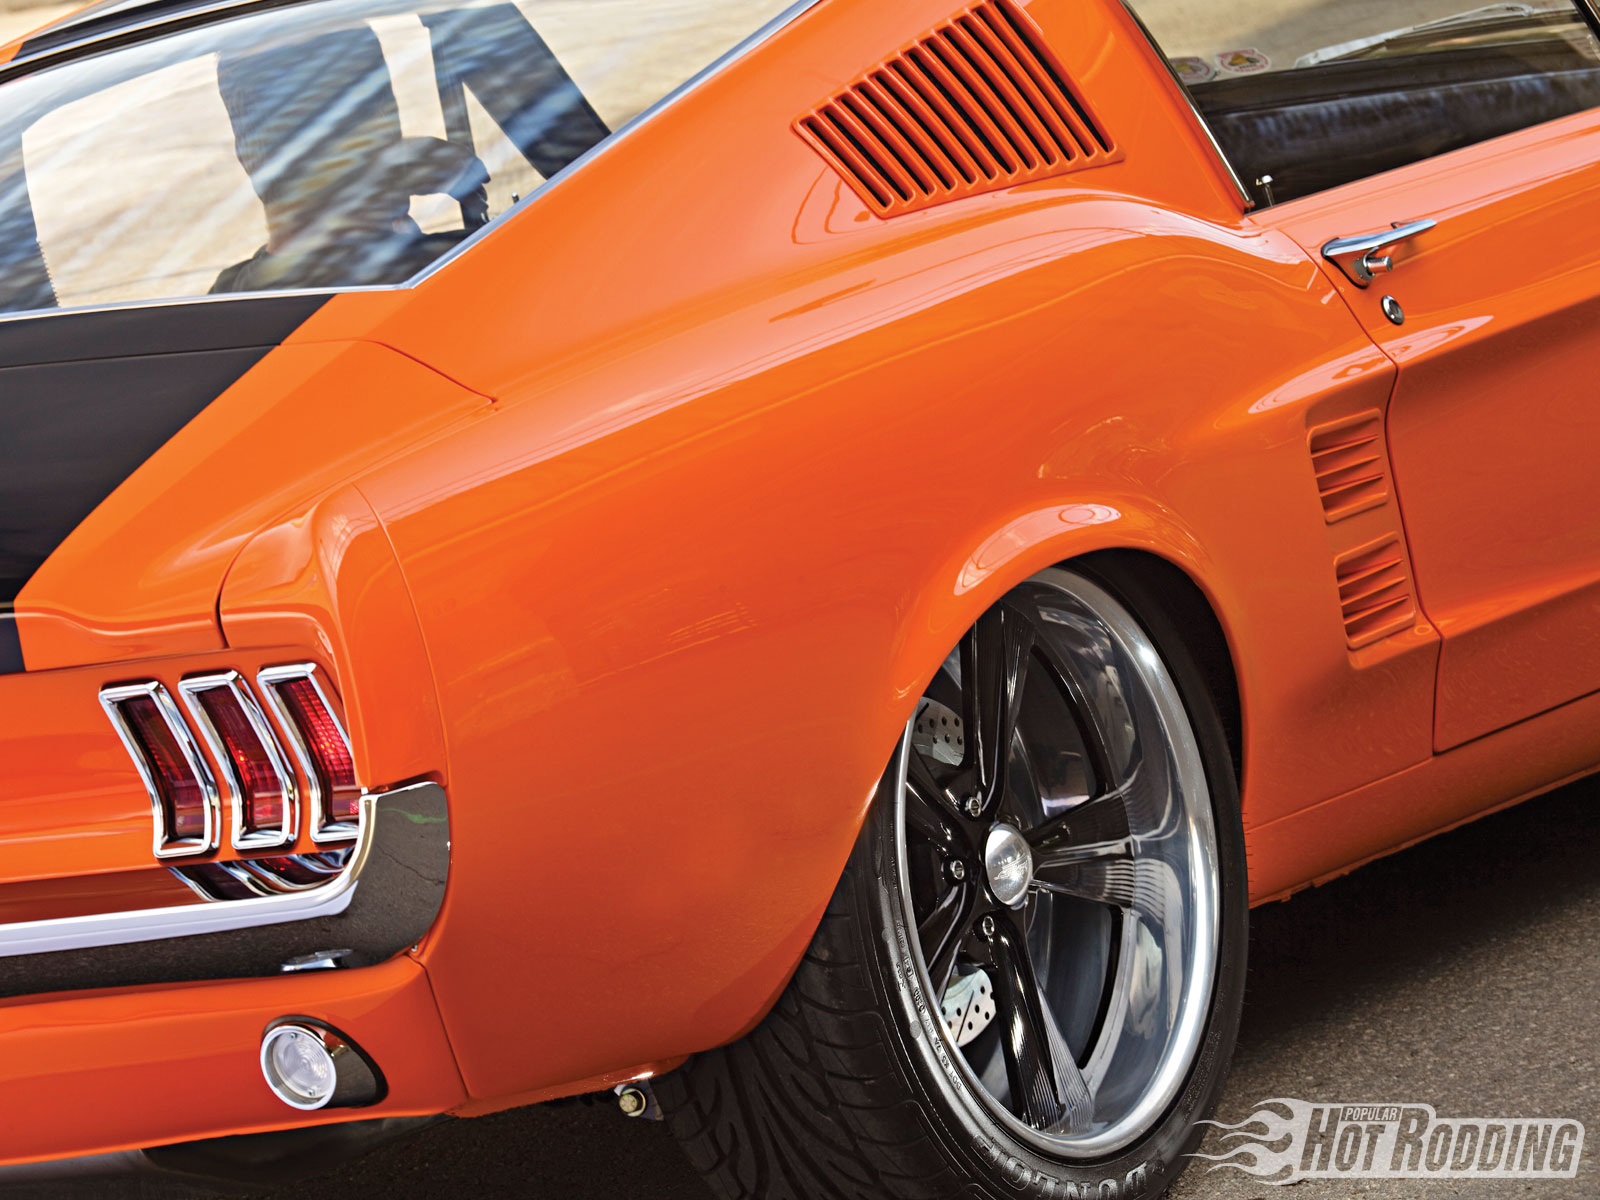 Cool Custom Car Wallpapers 1967 Ford Mustang Fastback Wallpaper And Background Image